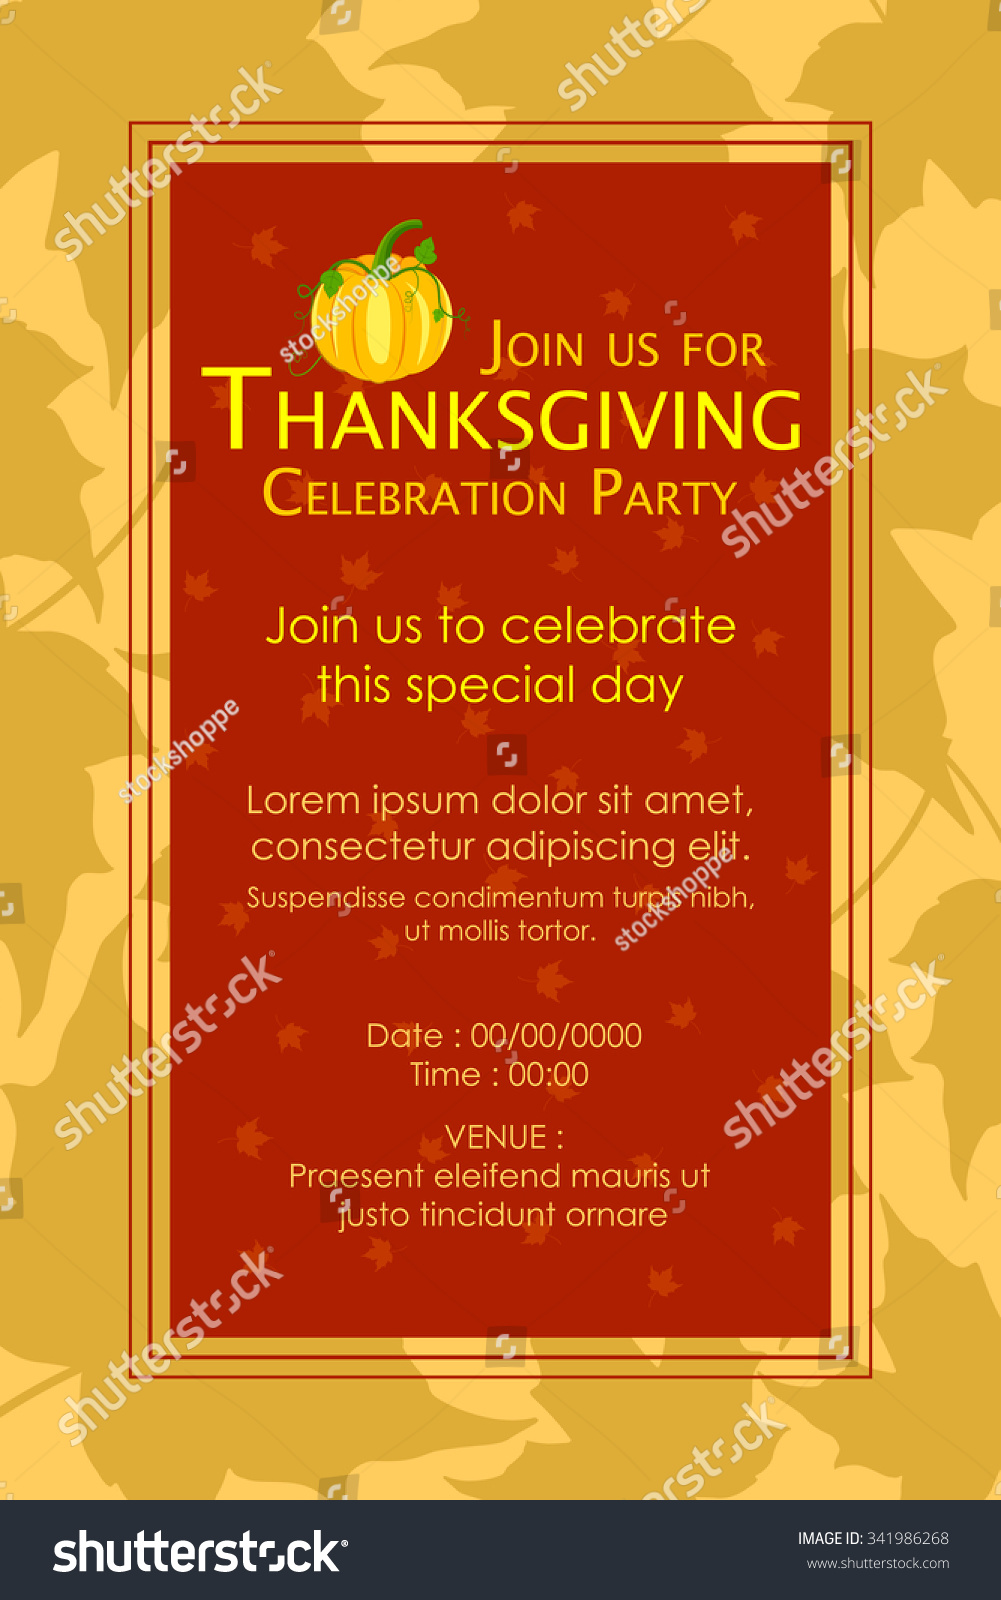 Thanksgiving Party Invitation Images - Party Invitations Ideas